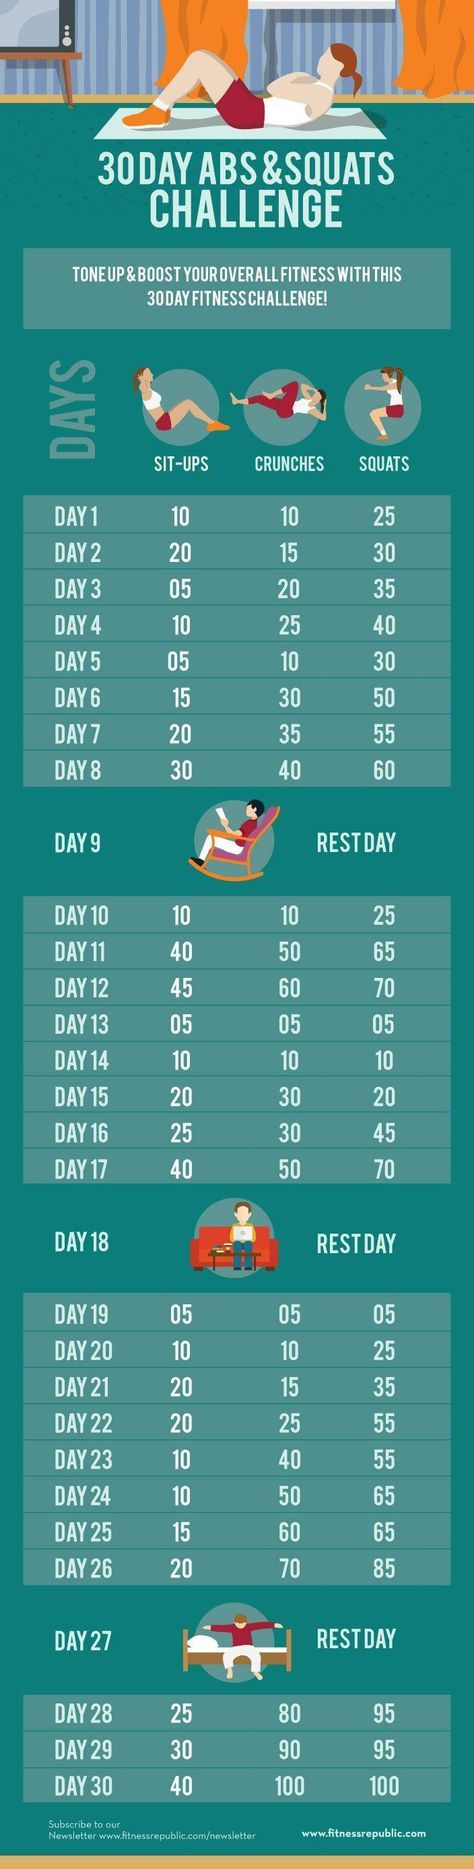 30 Day Fitness Challenge to get butt and gut in gear. Could do this first thing in the morning to knock it out of the way.